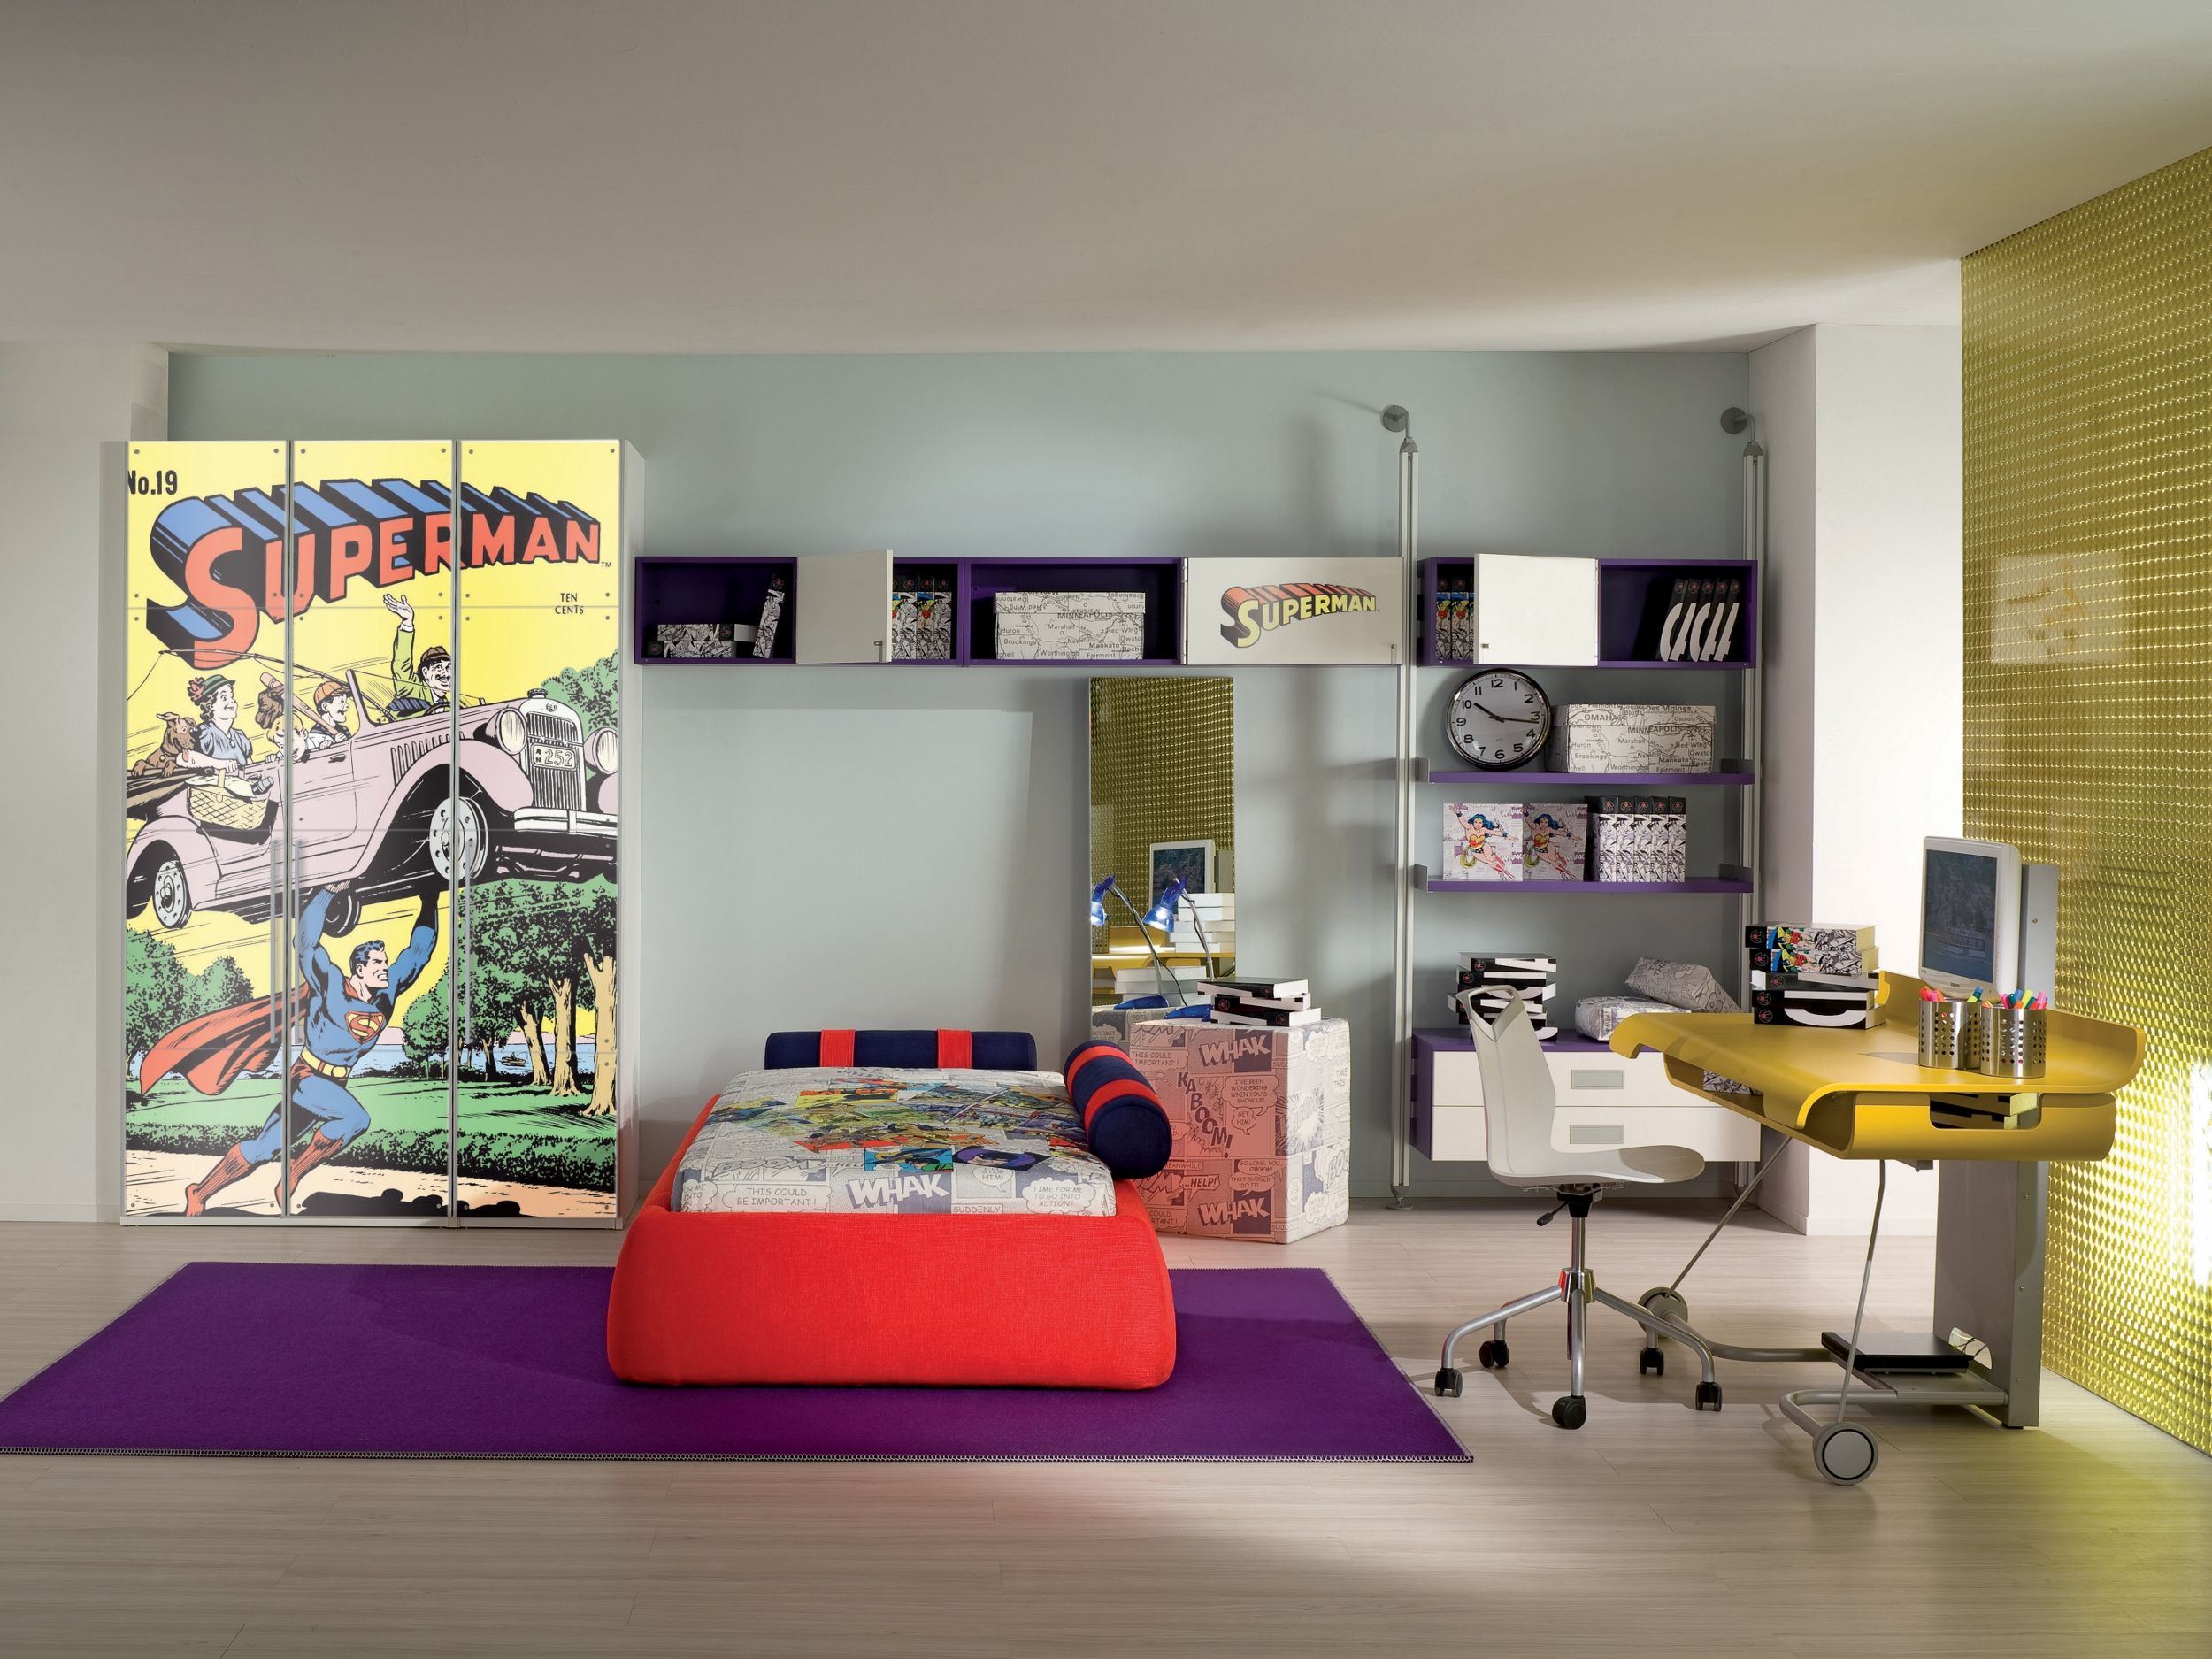 Superman Theme Room Of A Great Poster Print Ideas For